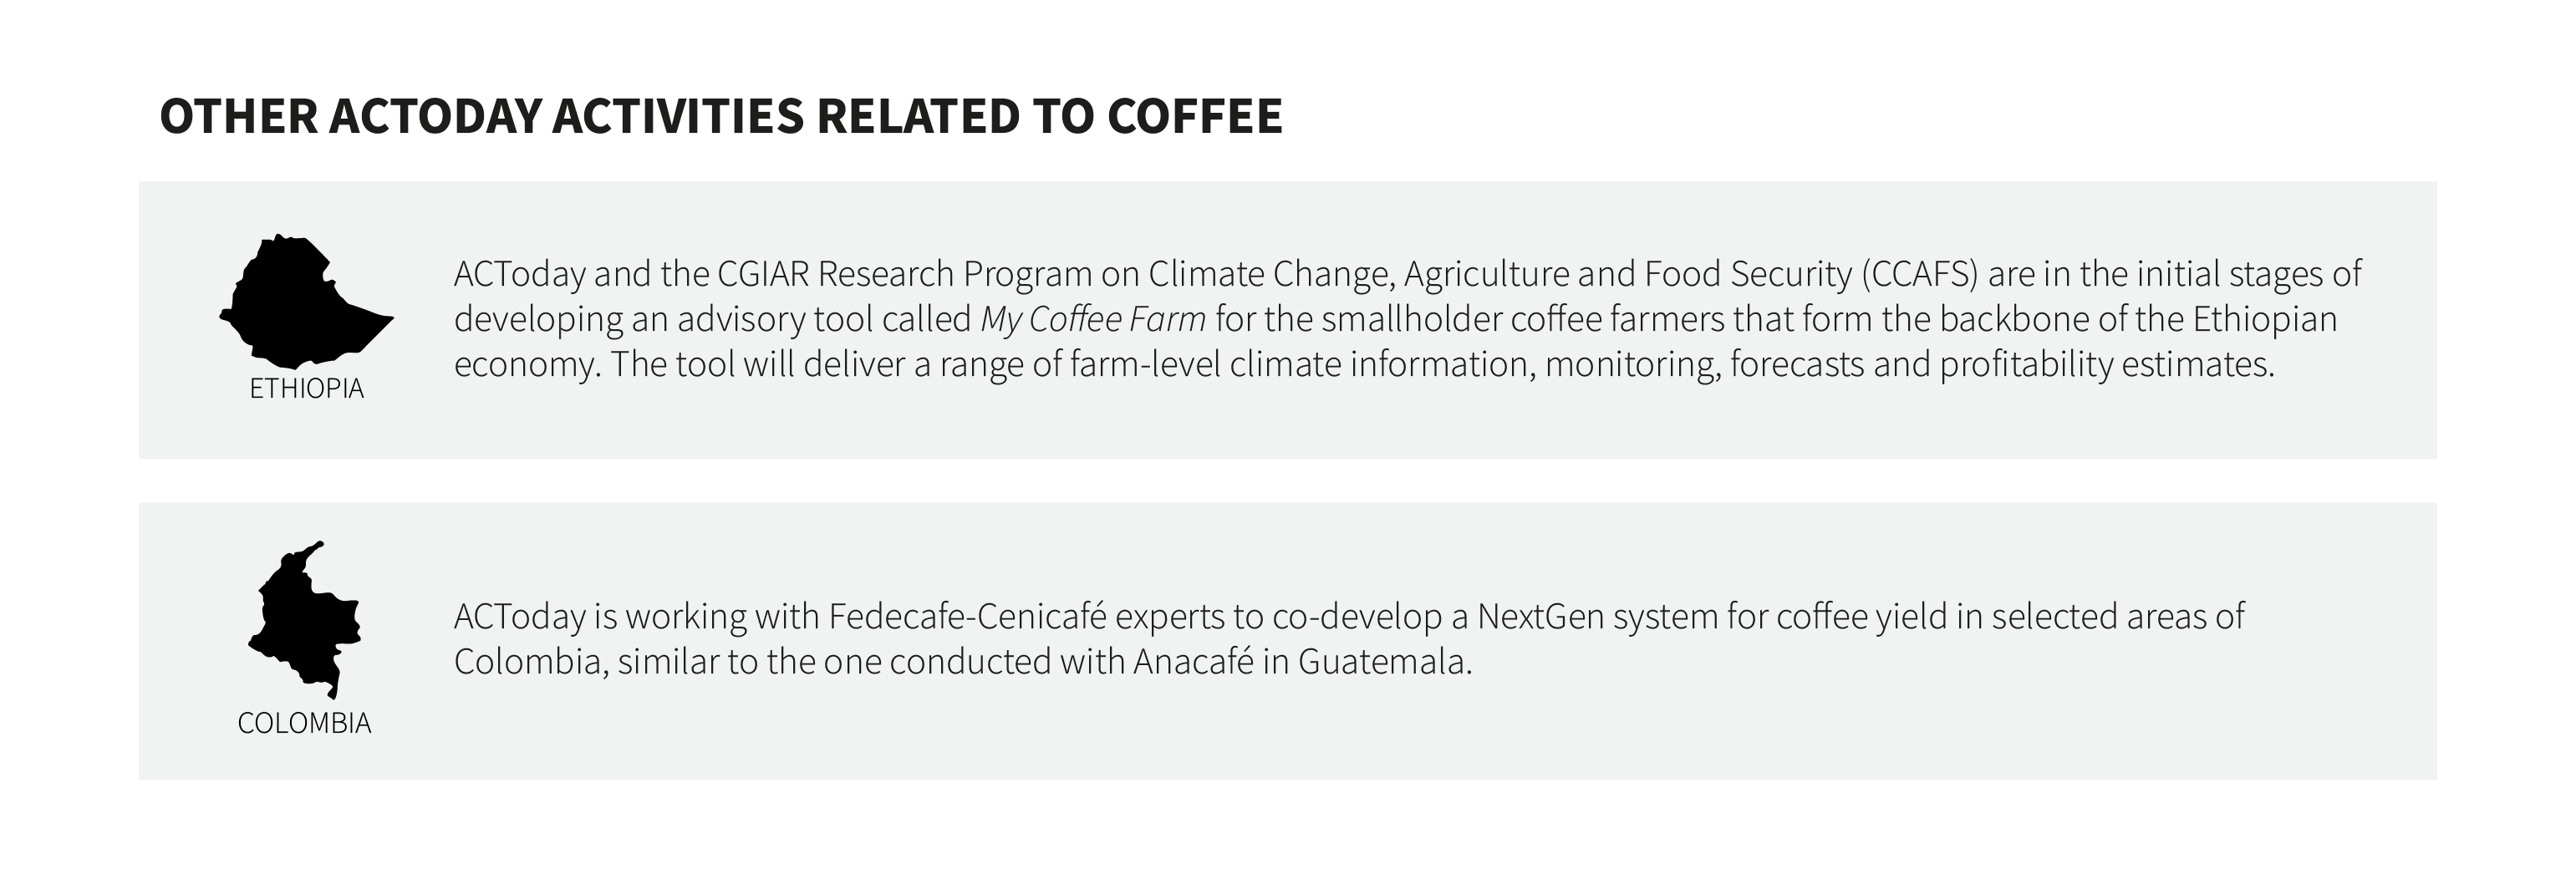 """The headline of the graphic reads """"Other ACToday activities related to coffee."""" Two long grey text boxes are stacked below the headline. In the top box is the black silhouette of the country of Ethiopia and the text """"ACToday and the CGIAR Research Program on Climate Change, Agriculture and Food Security (CCAFS) are in the initial stages of developing an advisory tool called My Coffee Farm for the smallholder coffee farmers that form the backbone of the Ethiopian economy. The tool will deliver a range of farm-level climate information, monitoring, forecasts and profitability estimates."""" In the bottom box is the black silhouette of the country of Colombia and the text """"ACToday is working with Fedecafe-Centicafé to co-develop a NextGen system for coffee yield in selected areas of Colombia, similar to the one conducted with Anacafé in Guatemala."""